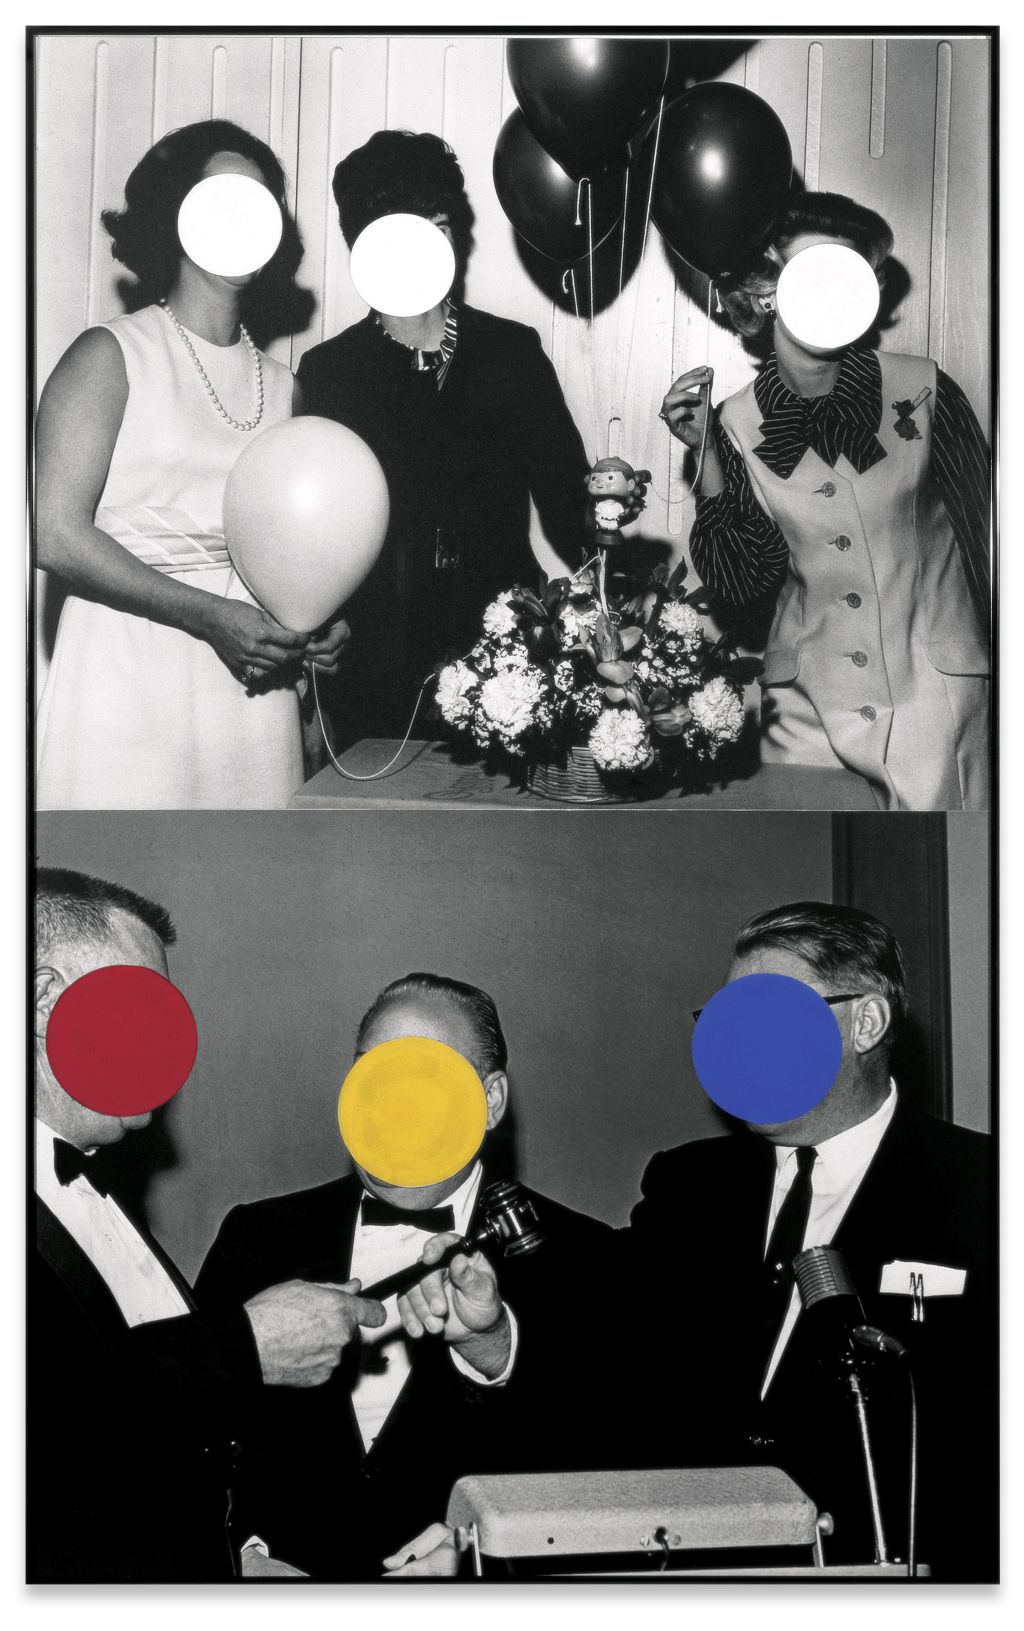 Estate of John Baldessari